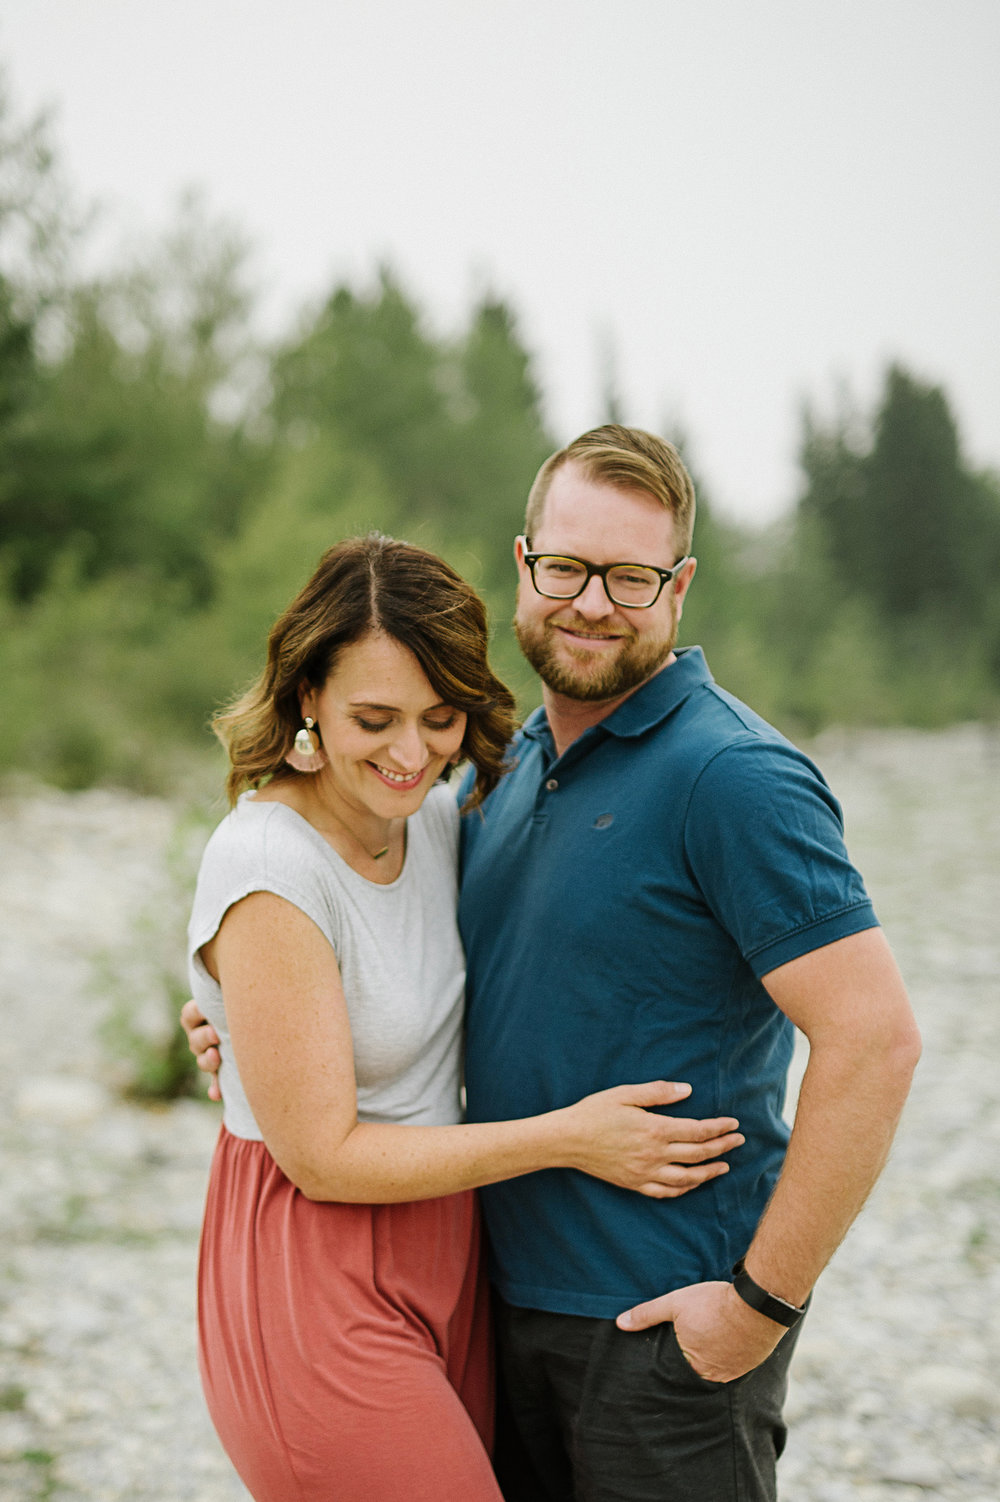 Calgary_Family_Photography_Hodgson_Family_Portraits_2018_HR020.jpg